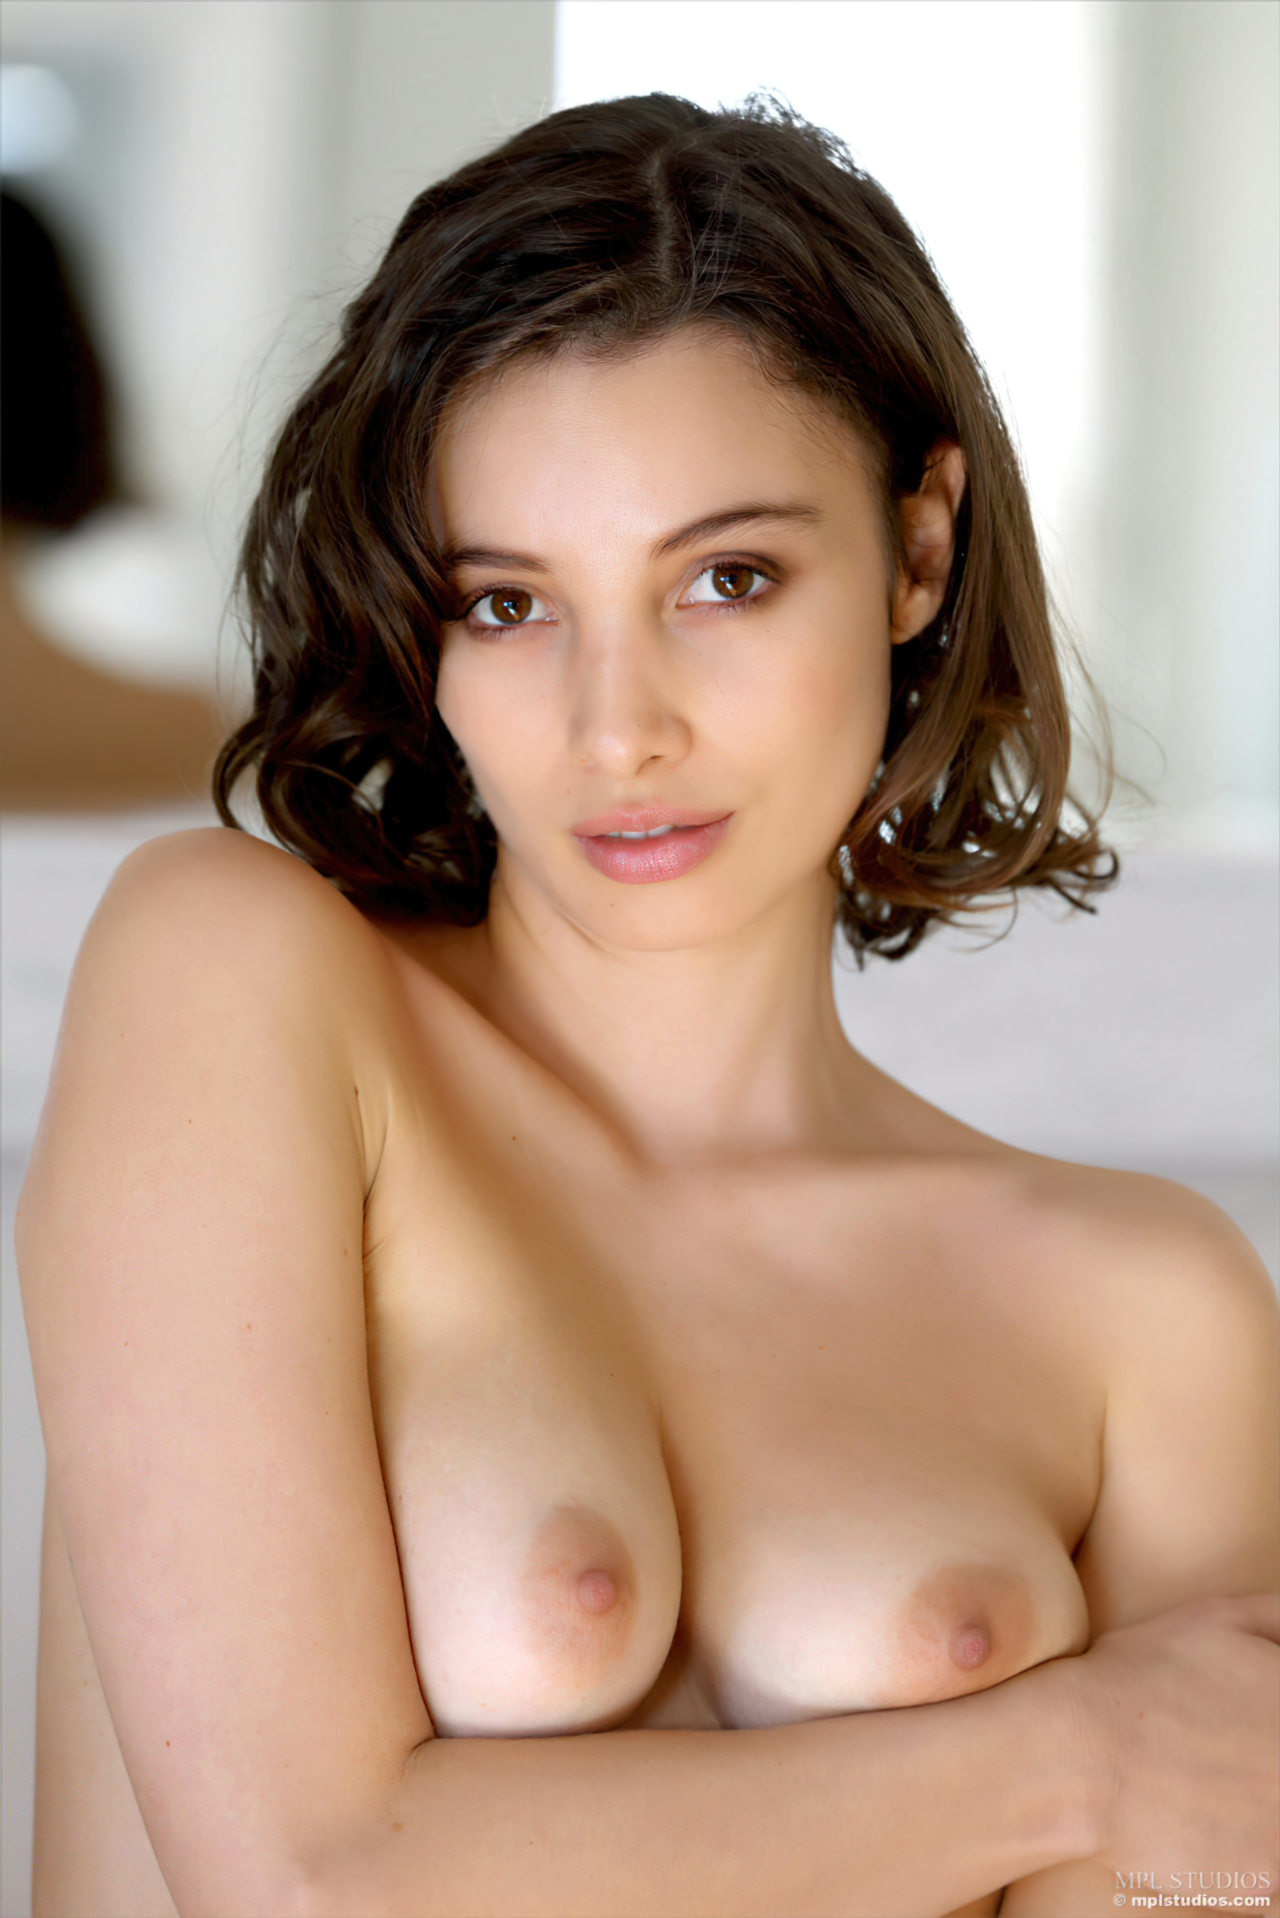 Topless (70)